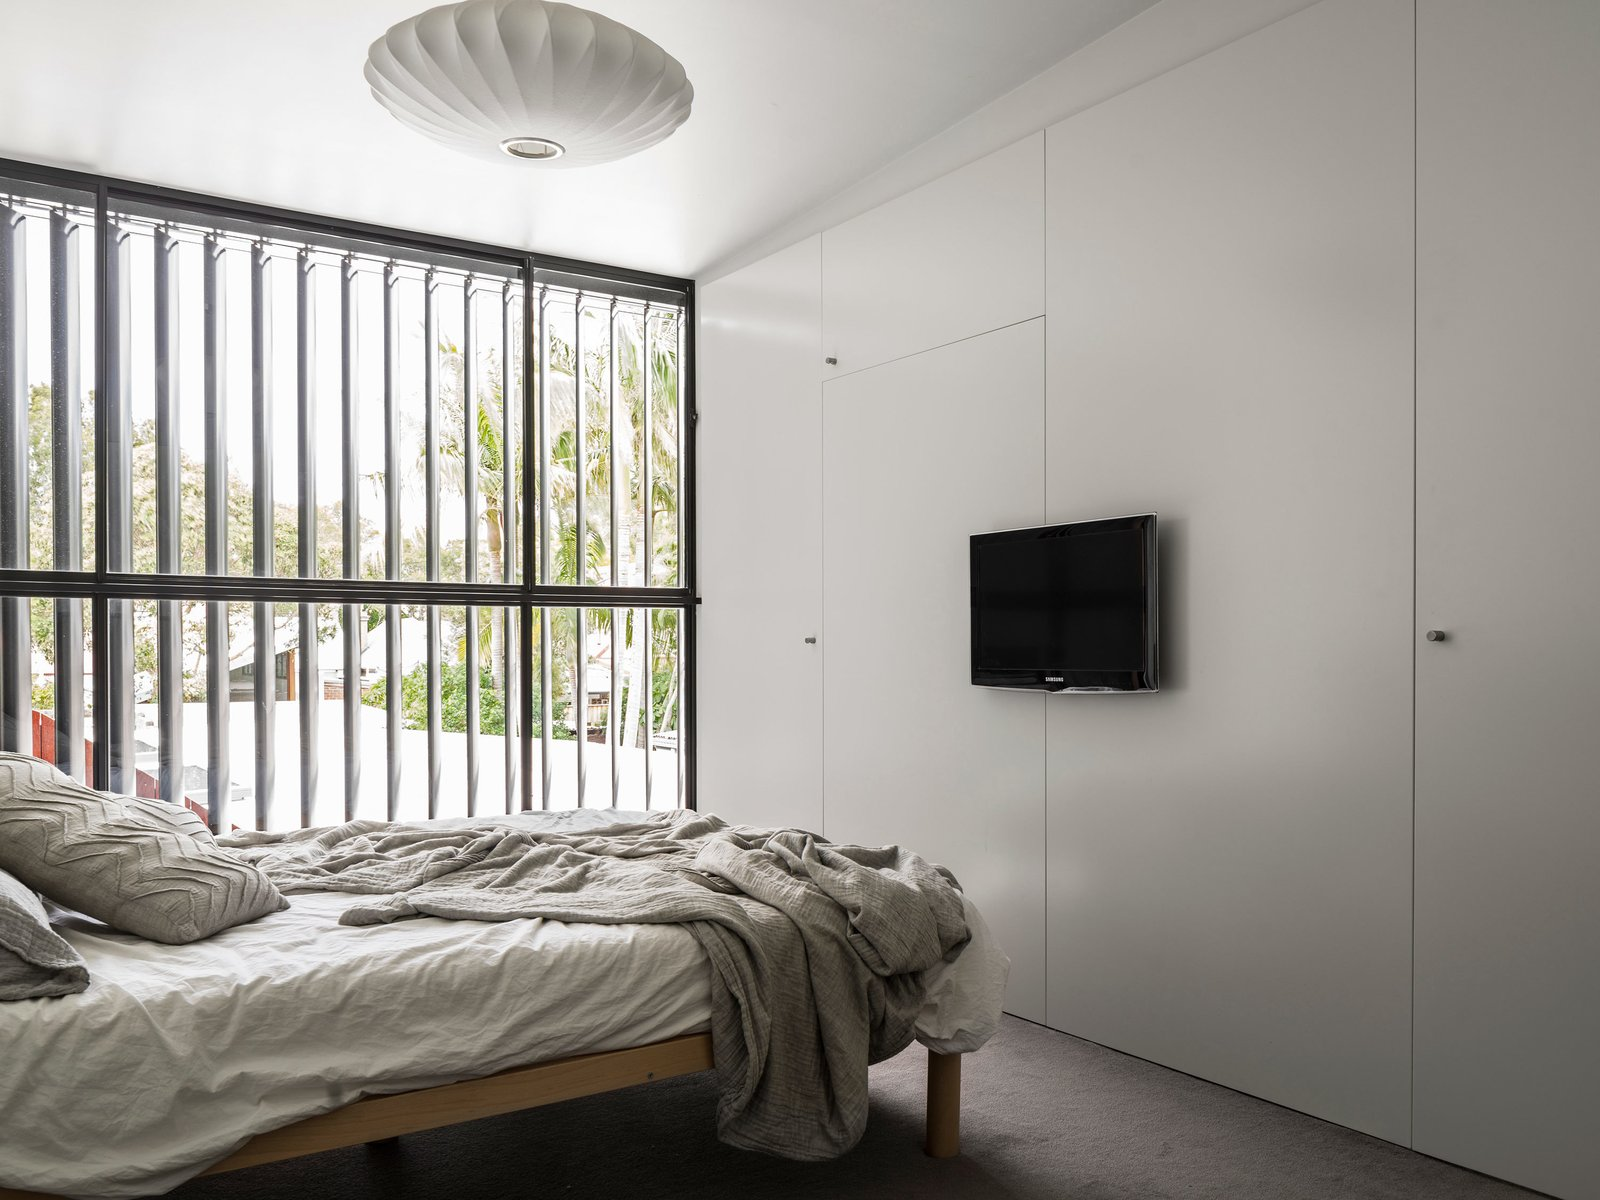 Full height louvers are used throughout the house, opening the interior spaces up to the outdoors. Tagged: Bedroom, Bed, Pendant Lighting, and Carpet Floor. 5 Energy-Efficient and Stylish Ways to Shade Your Windows - Photo 6 of 16